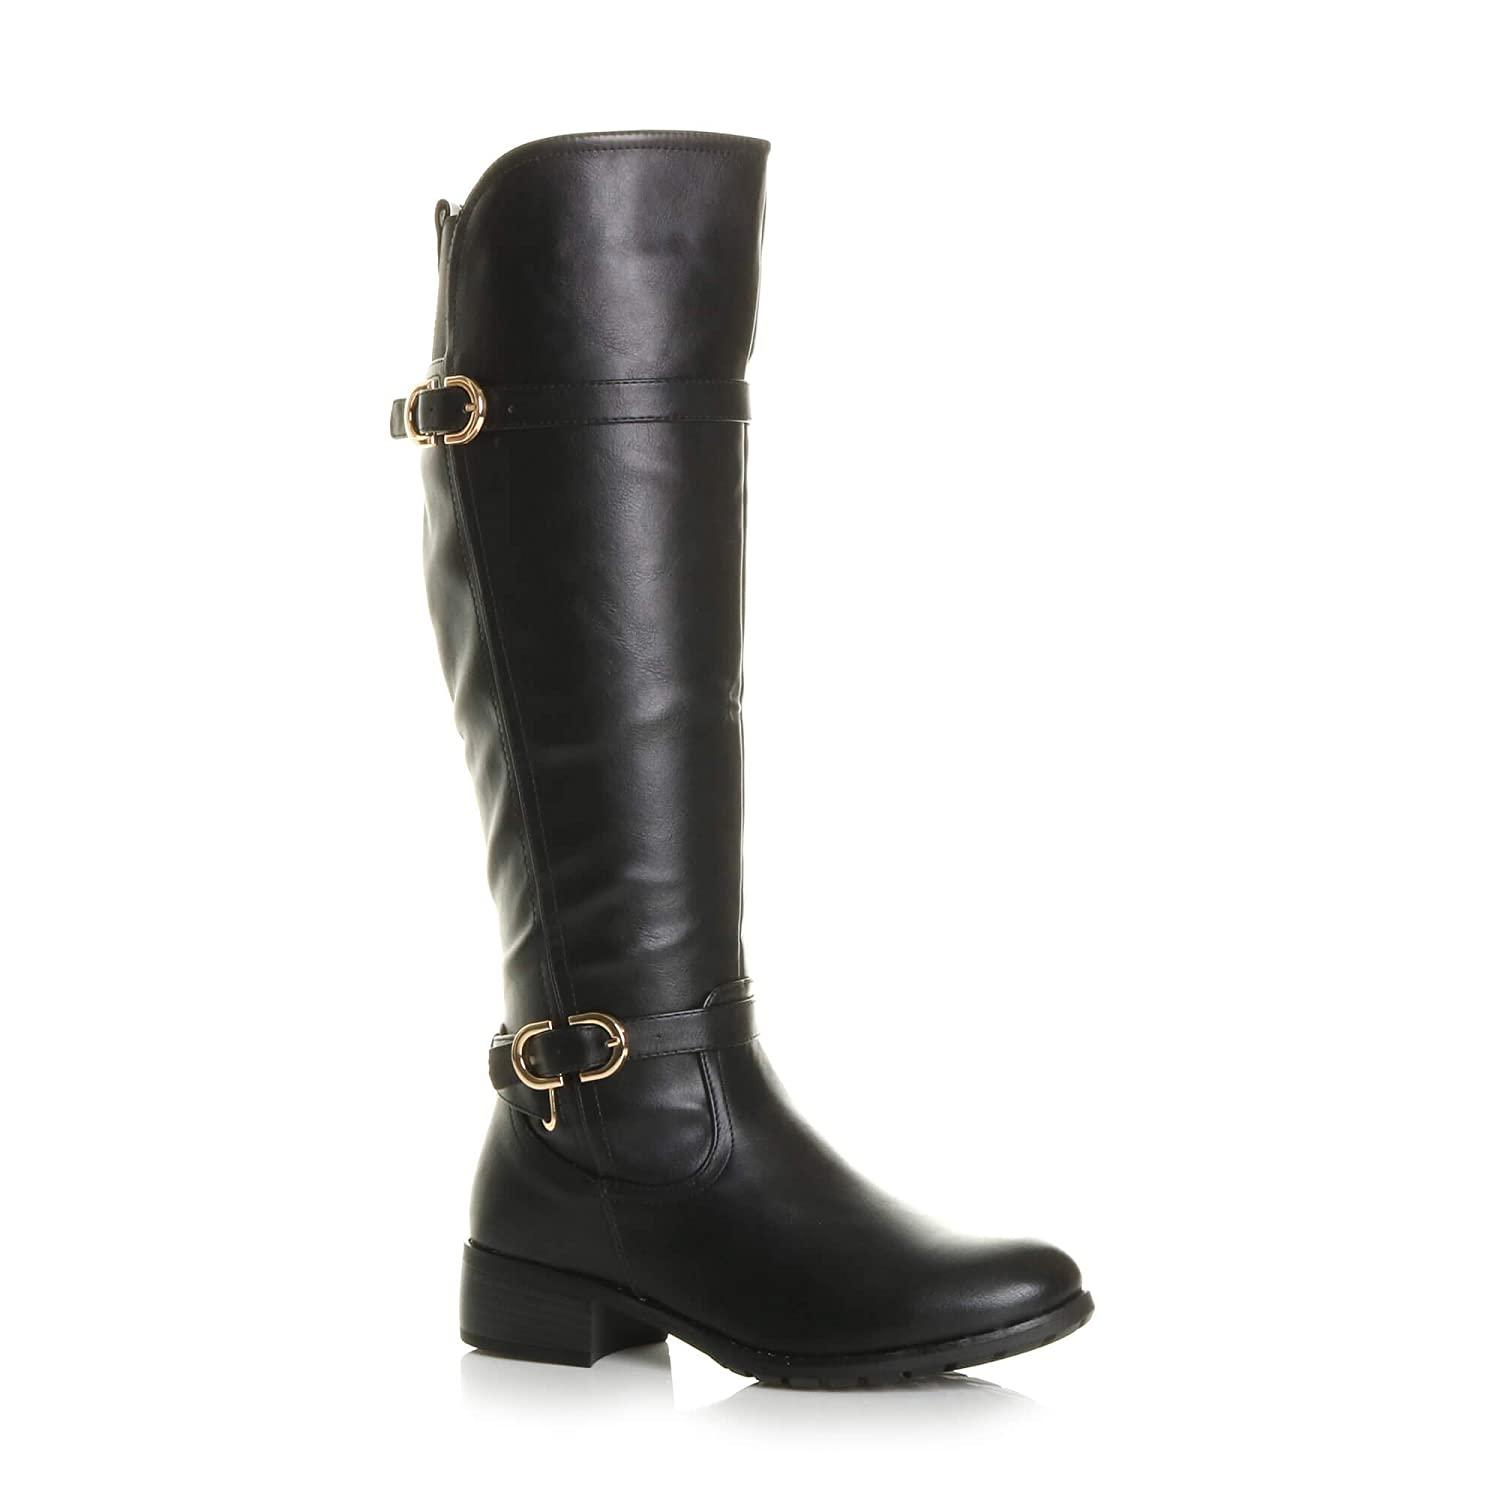 3b4d501b4bf99a Ajvani Womens Ladies Low Heel Flat Stretch Wide Calf Zip Buckle Strap Riding  Biker Boots Size: Amazon.co.uk: Shoes & Bags